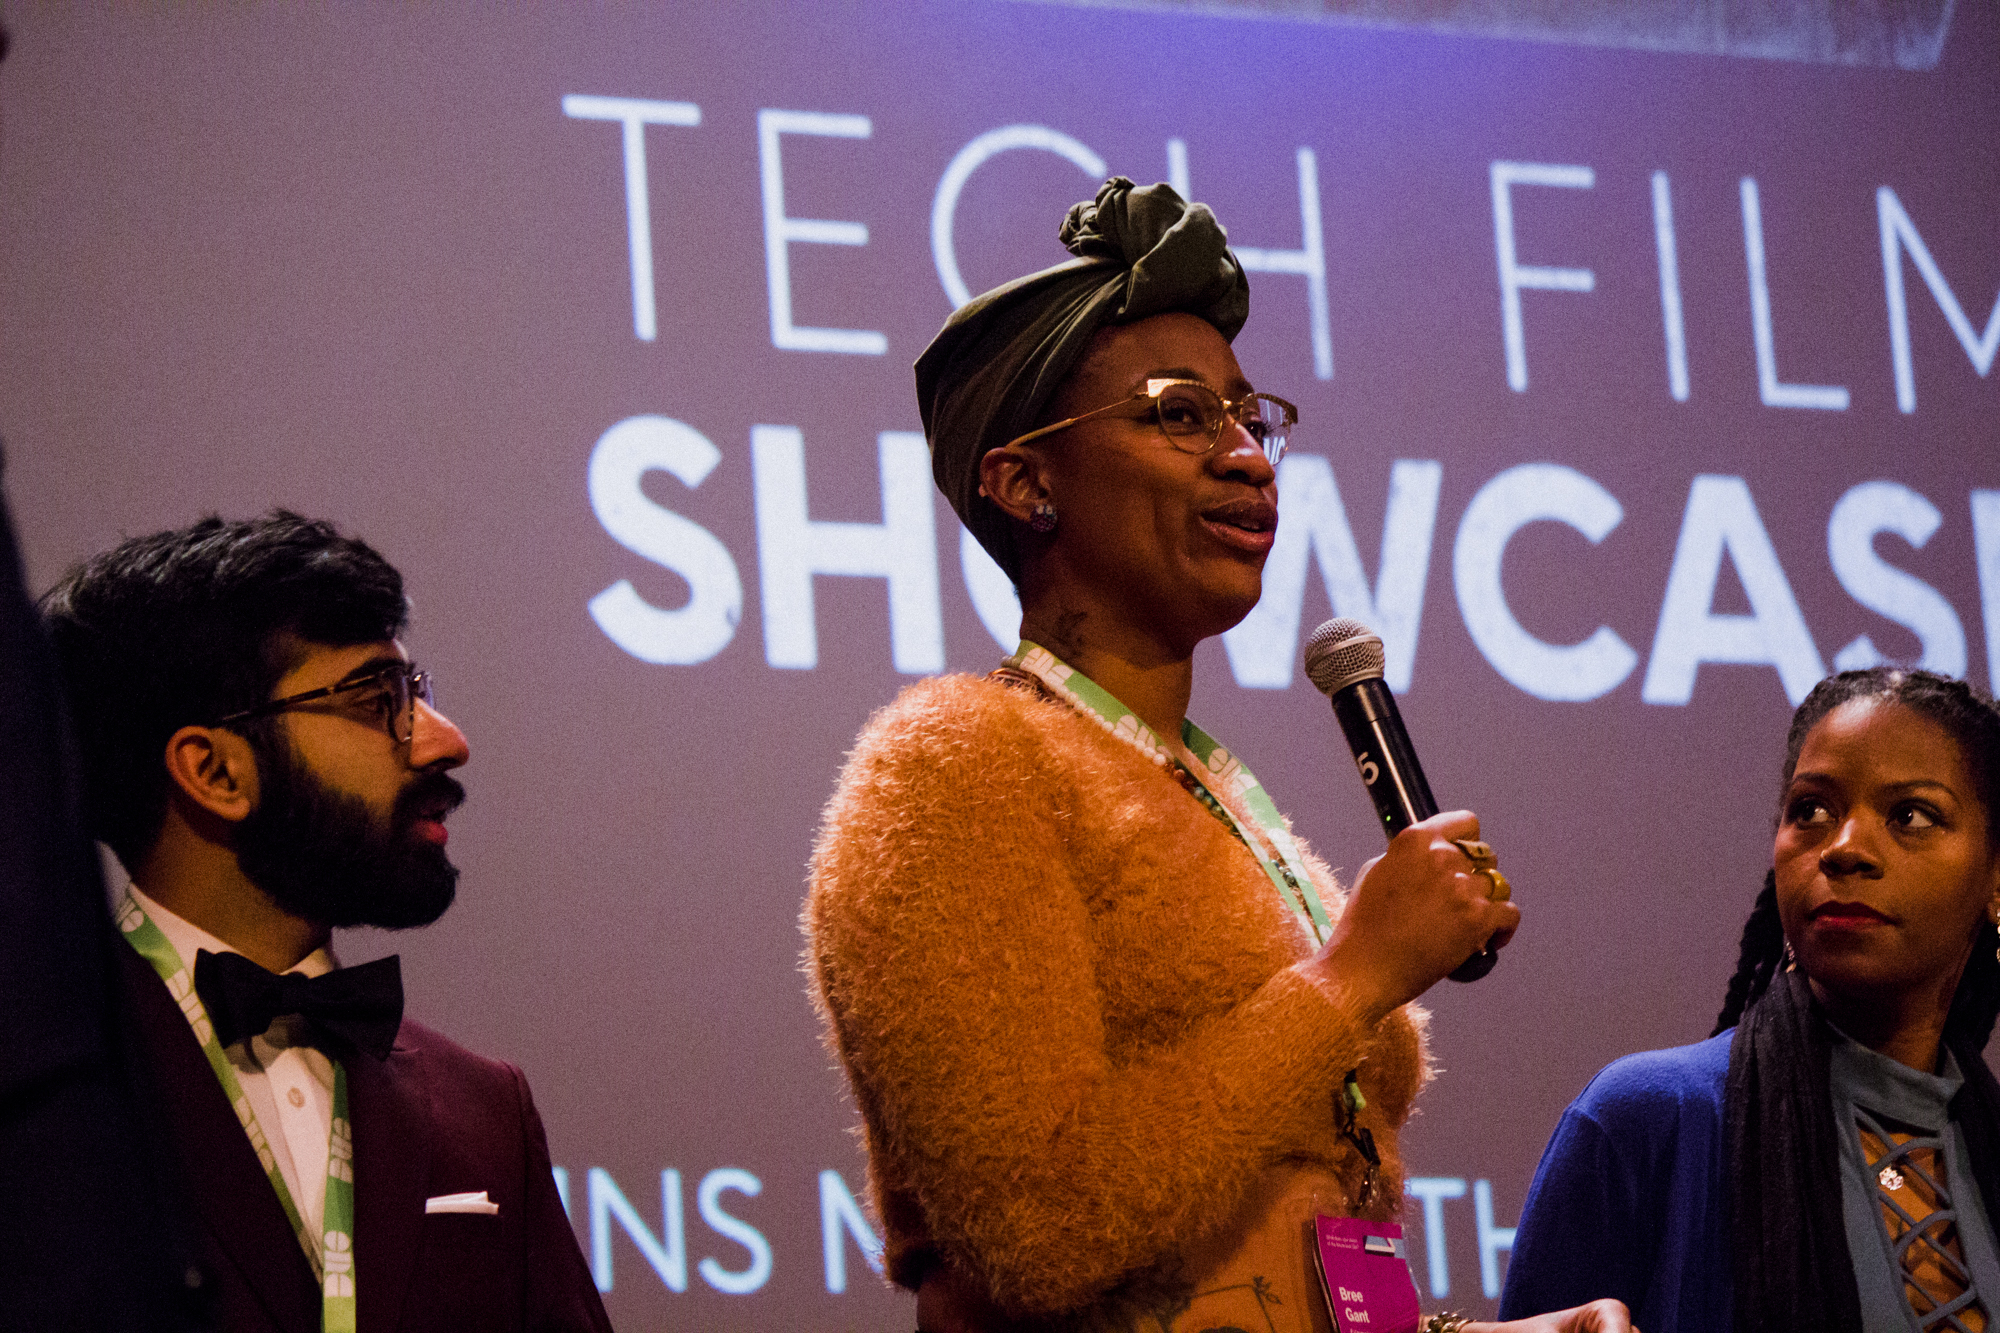 A2_Tech_Film_Fest_1.19.19_Photography_By_Katie_Alexis-68.jpg